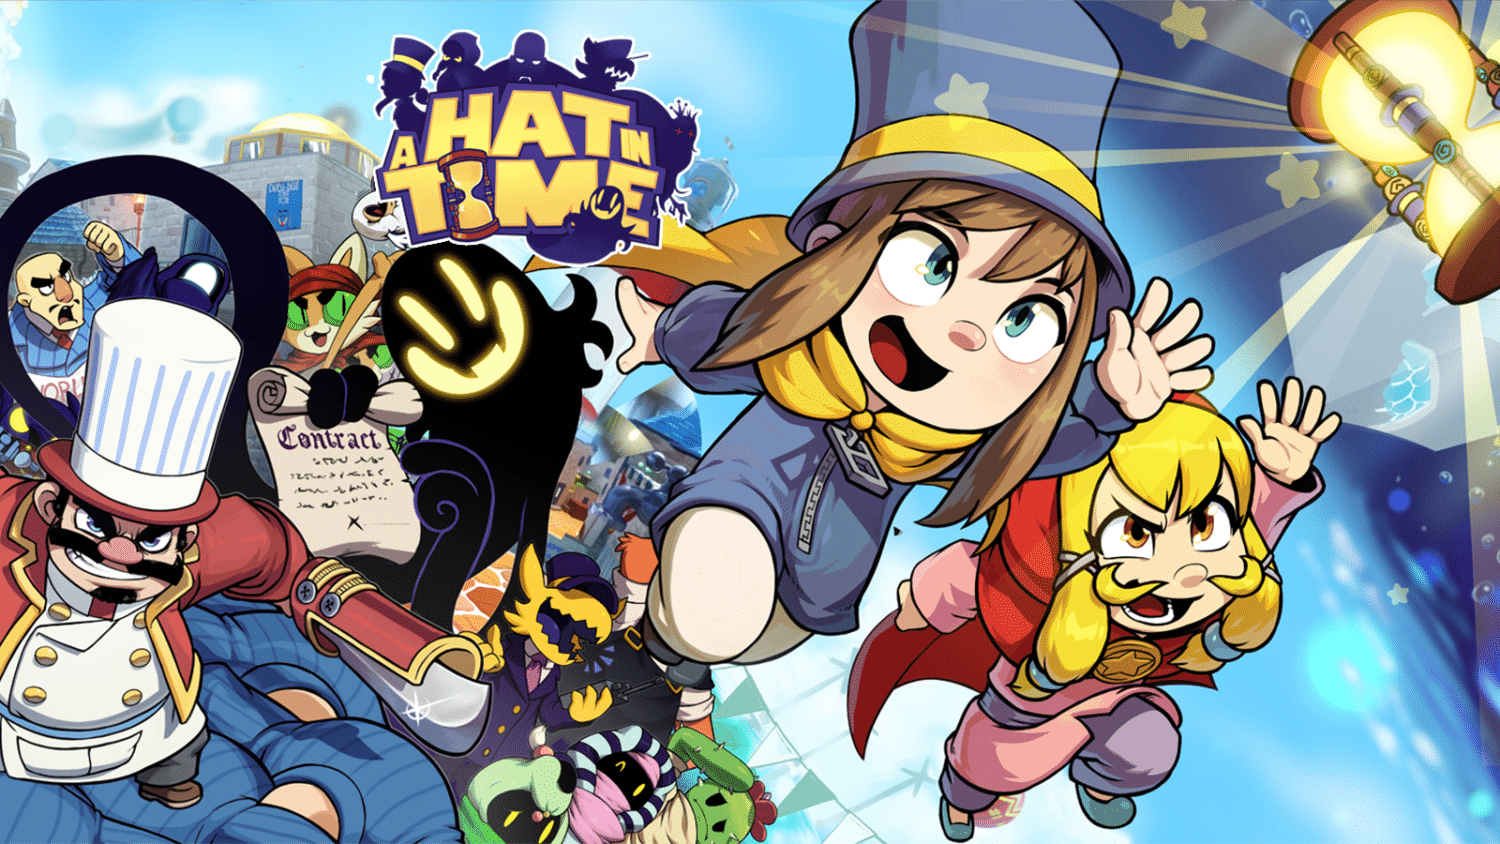 A Hat In Time is geupdate